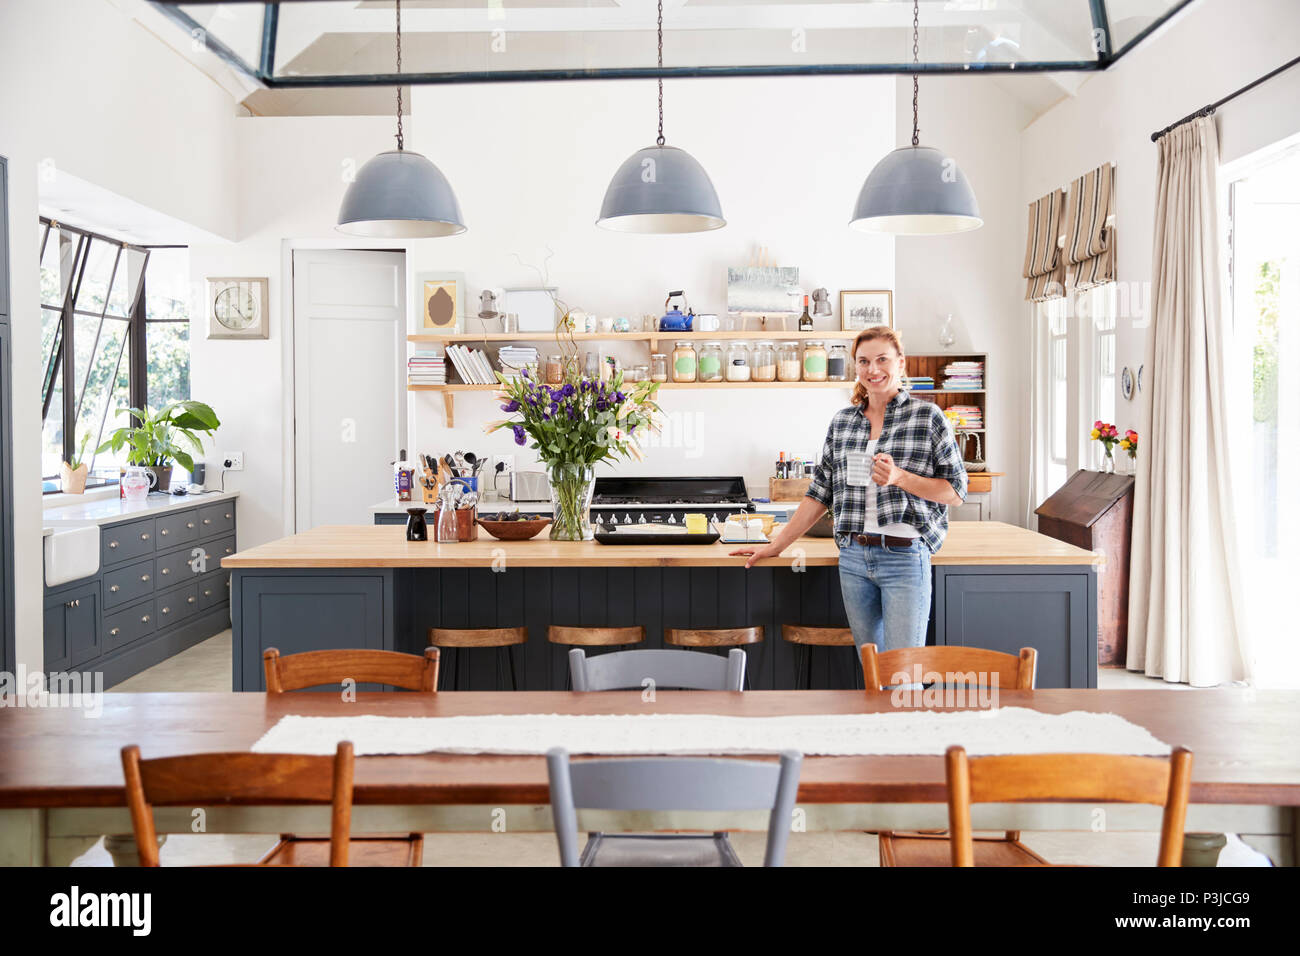 Woman Leaning On Island In An Open Plan Kitchen Dining Room